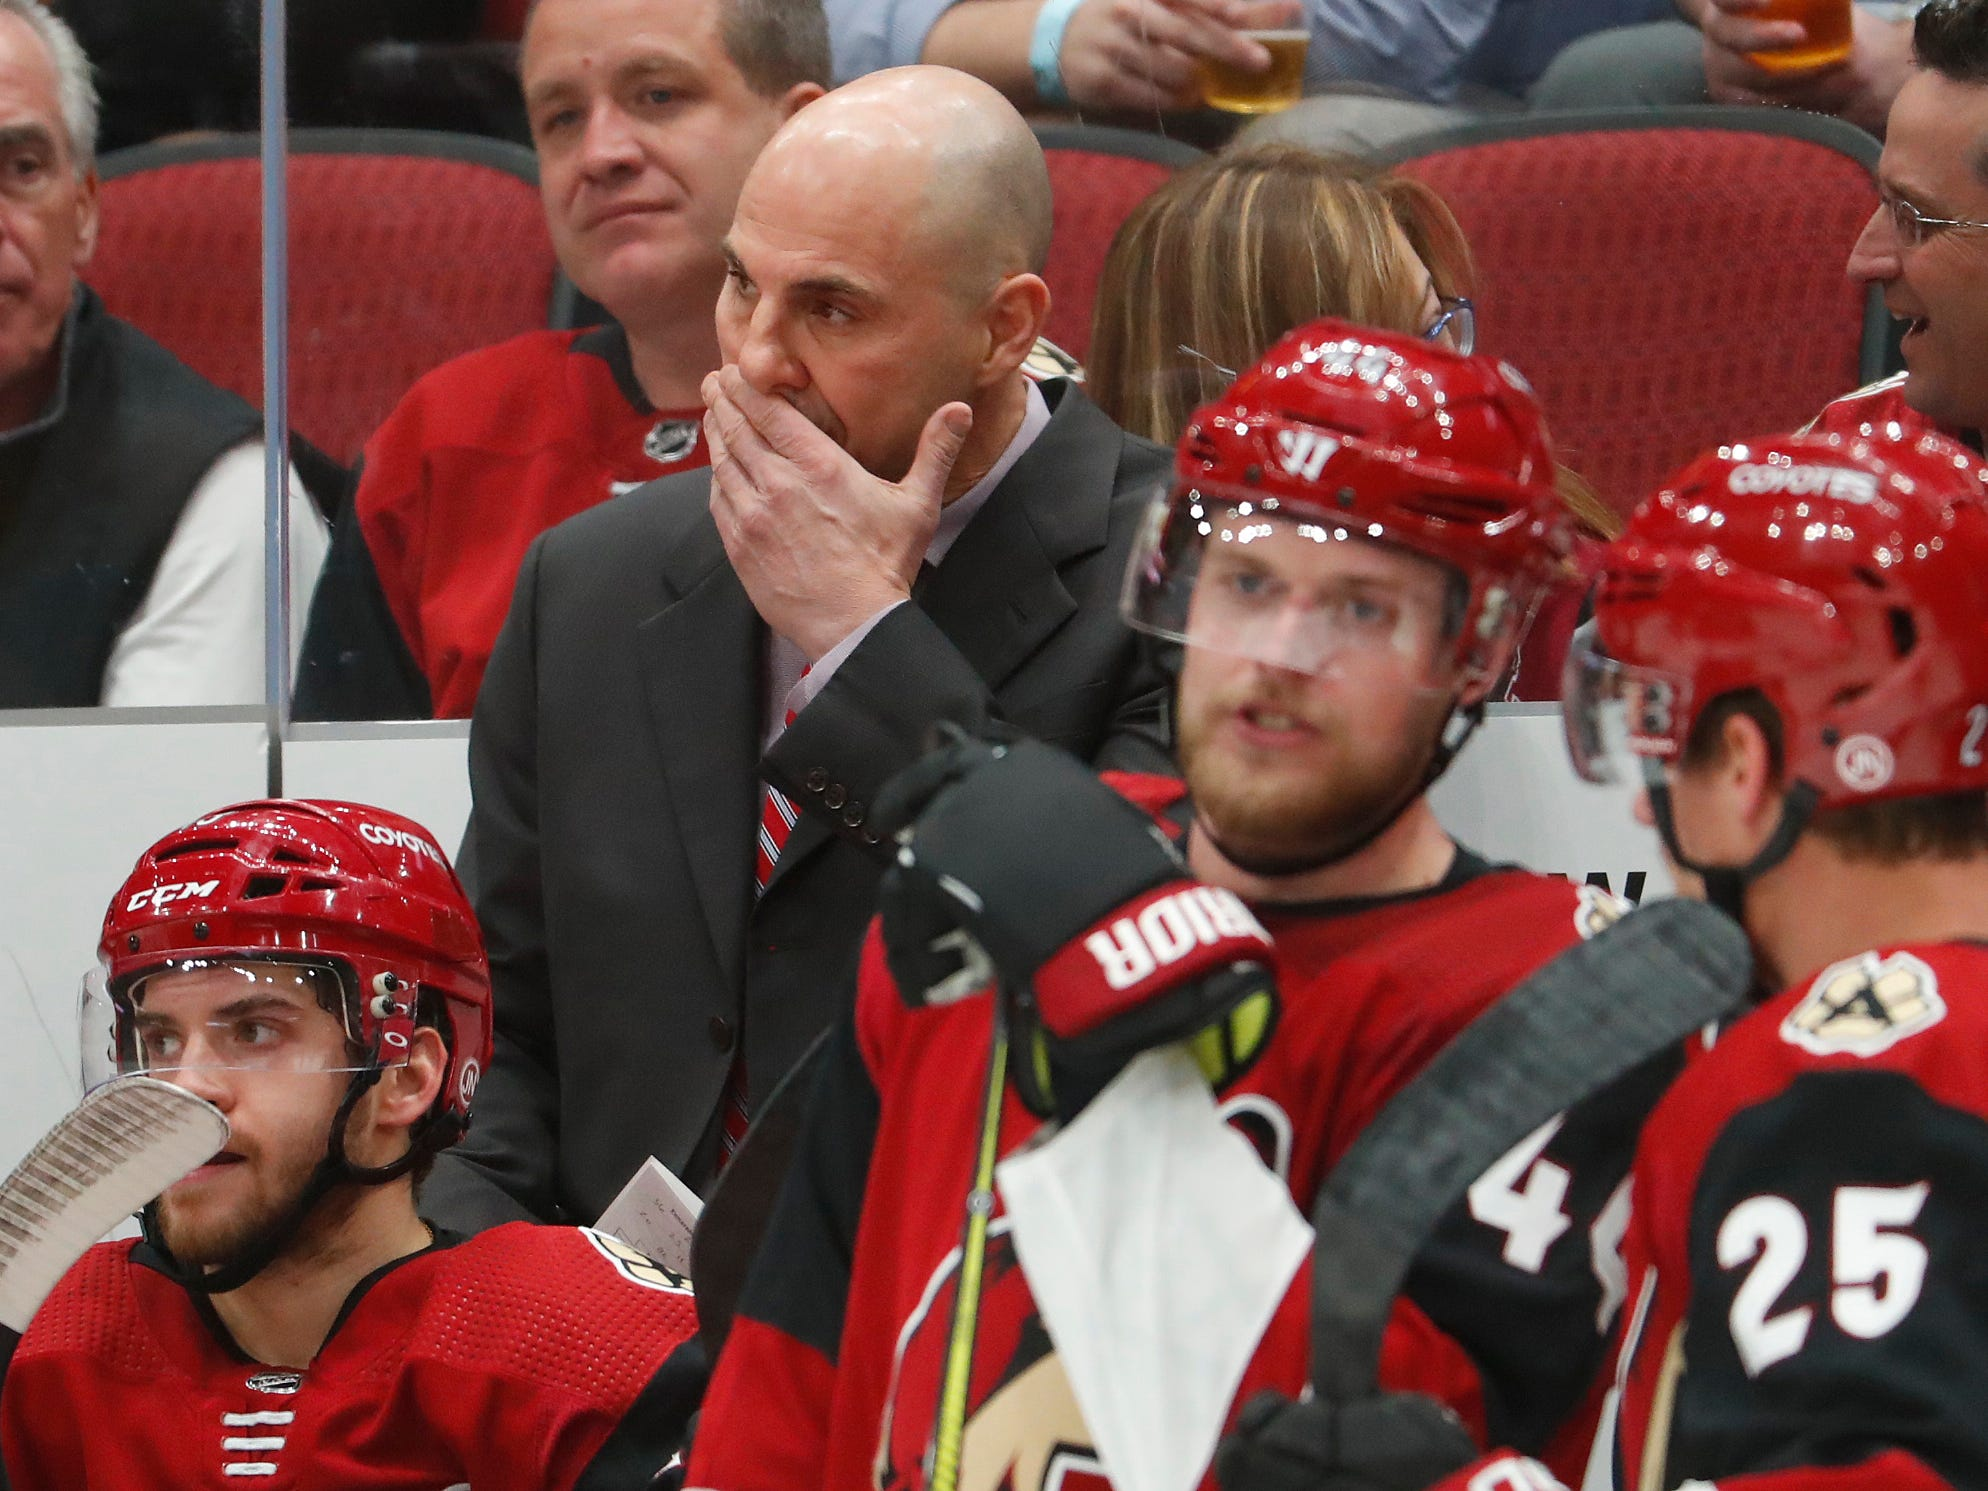 Coyotes' head coach Rick Tocchet watches his team play during the second period at Gila River Arena in Glendale, Ariz. on October 25, 2018.